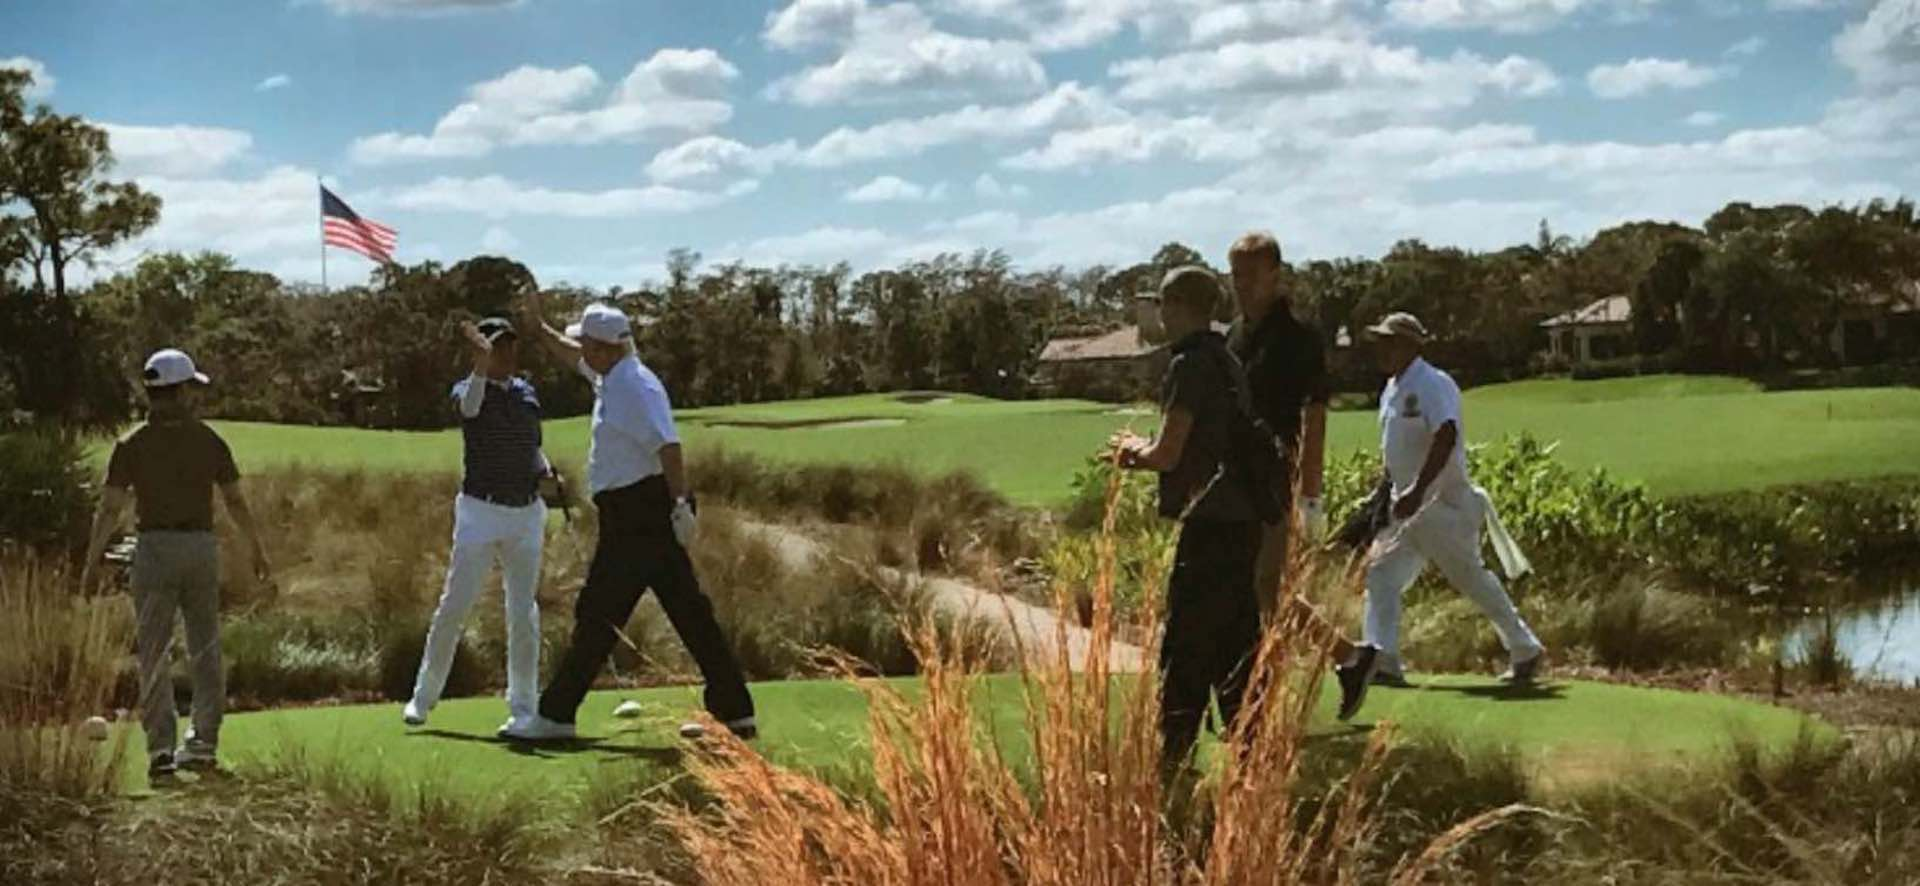 Trump's golf clubs a haven for lobbysists